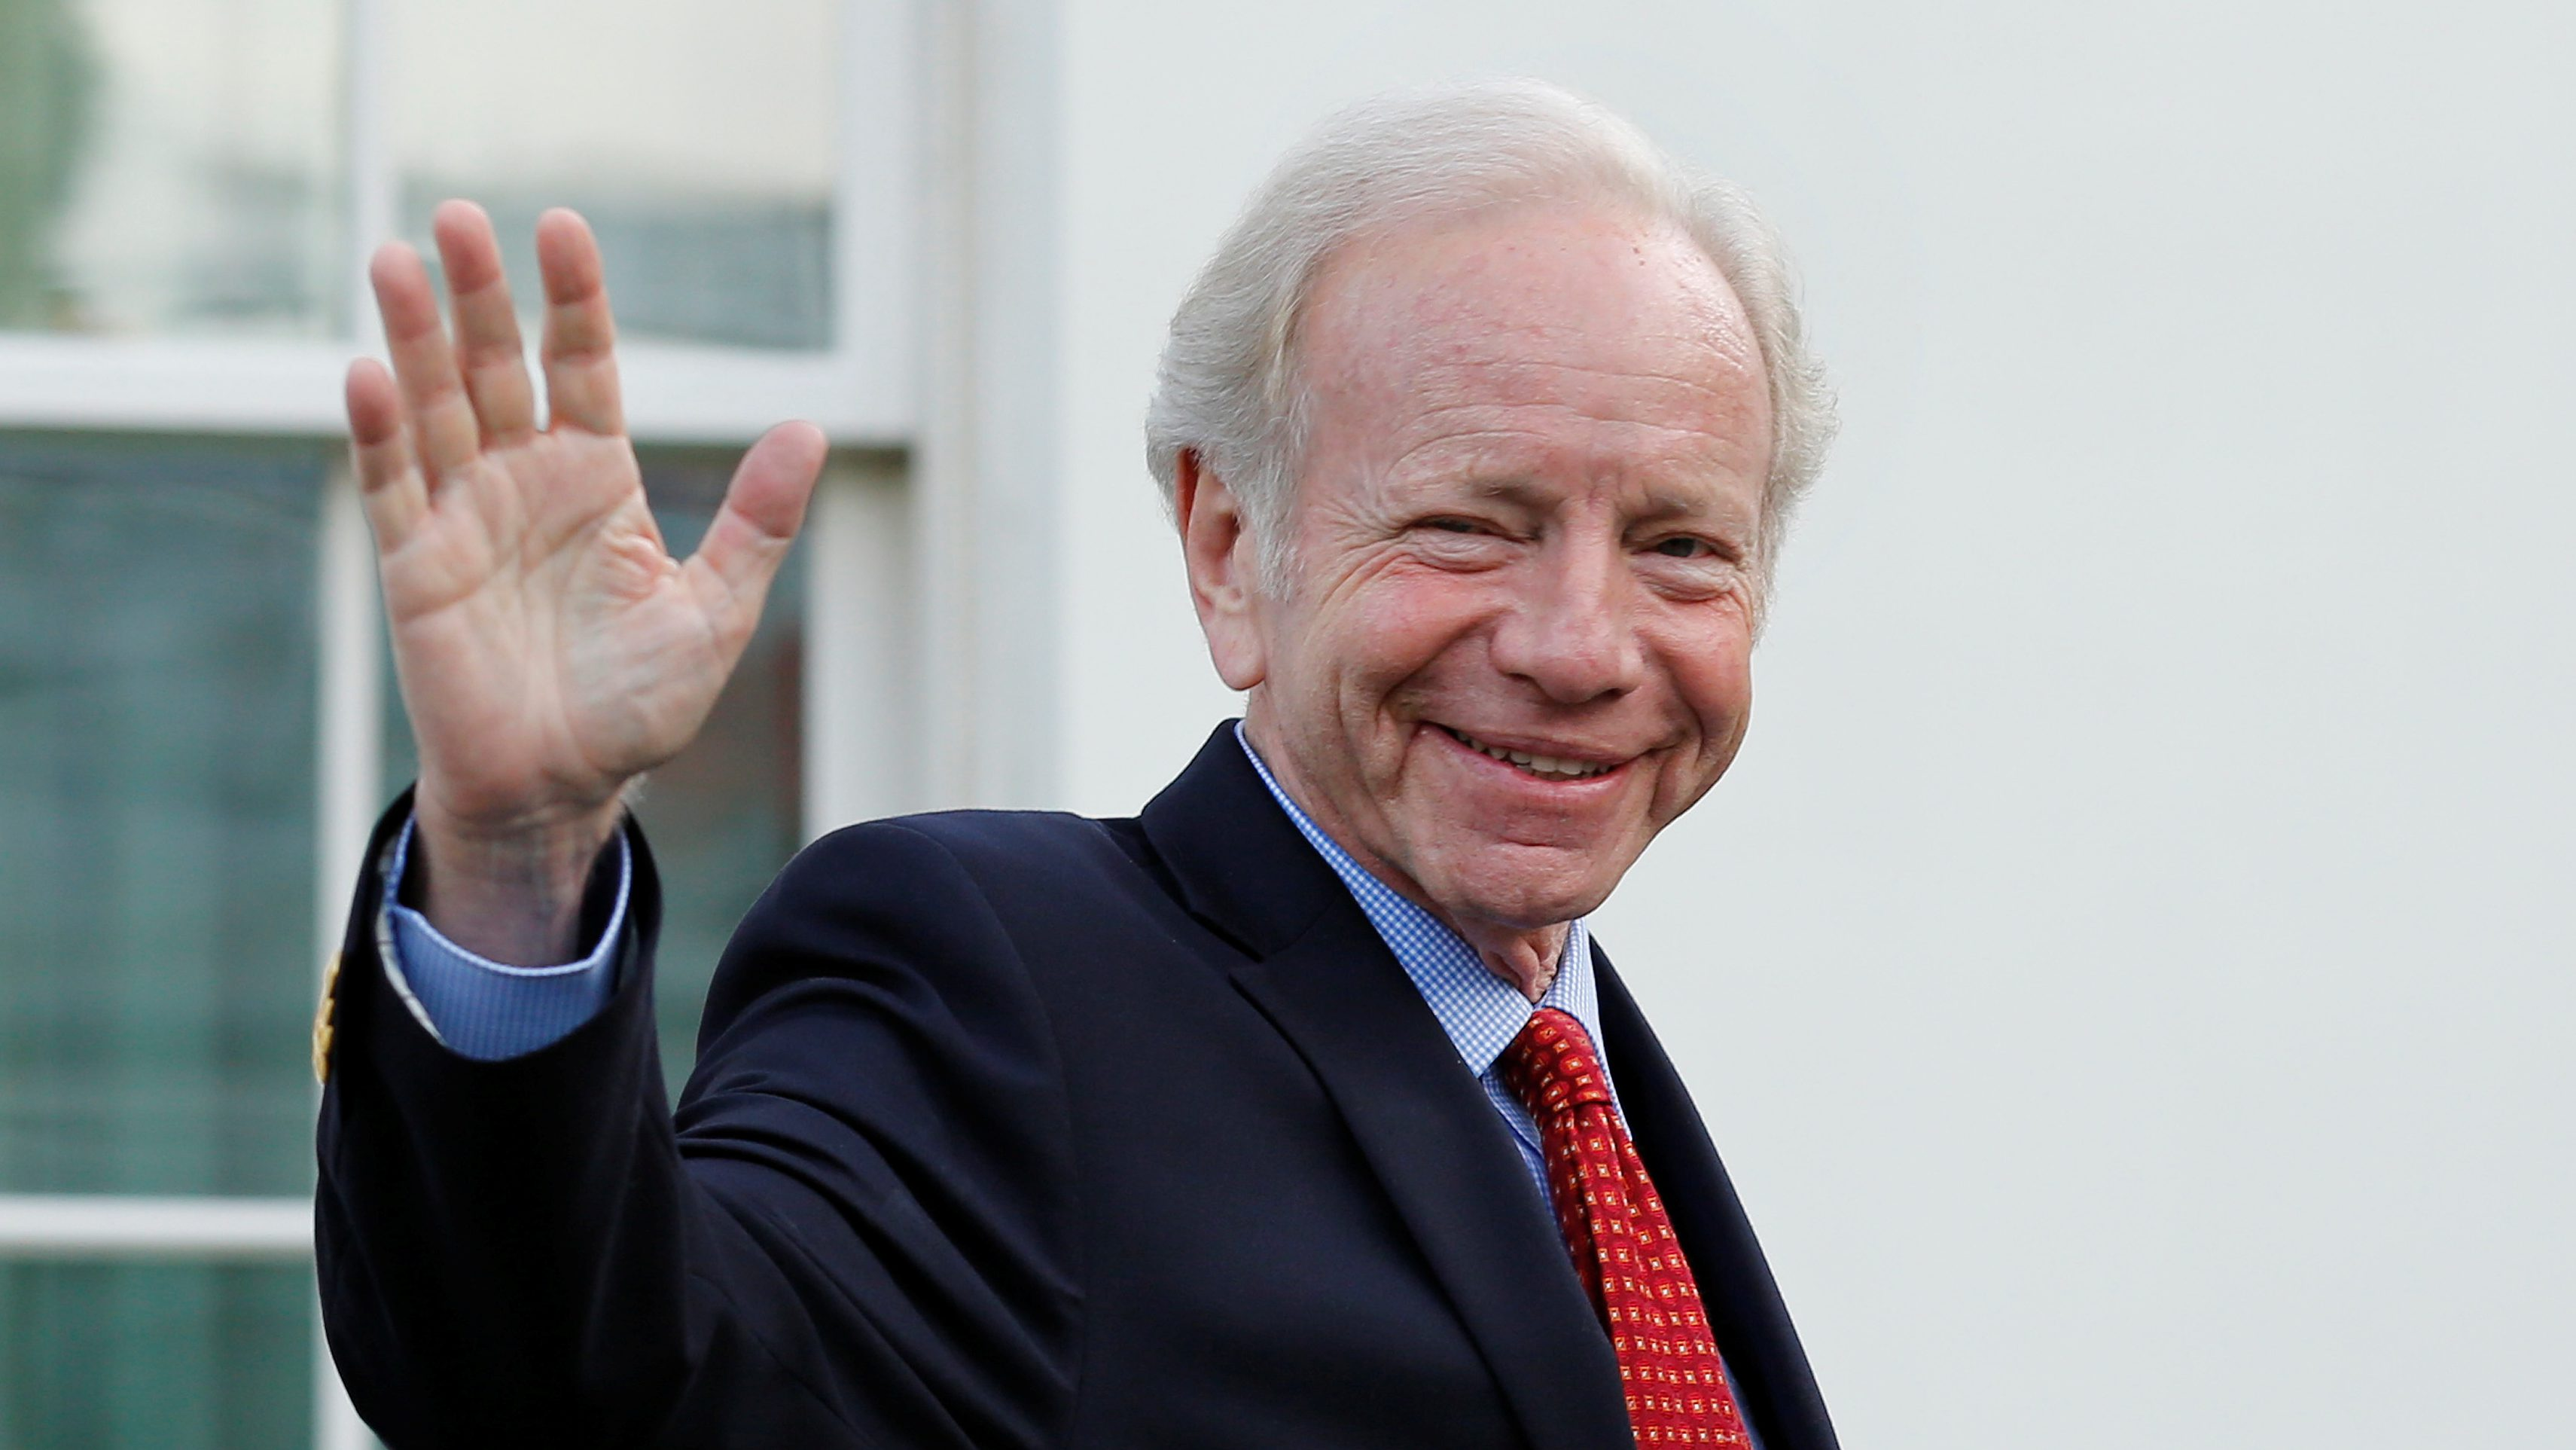 Former Senator Joe Lieberman waves as he leaves after a meeting with President Donald Trump for candidates for FBI director at the White House in Washington, U.S., May 17, 2017. REUTERS/Yuri Gripas - RTX36AX7